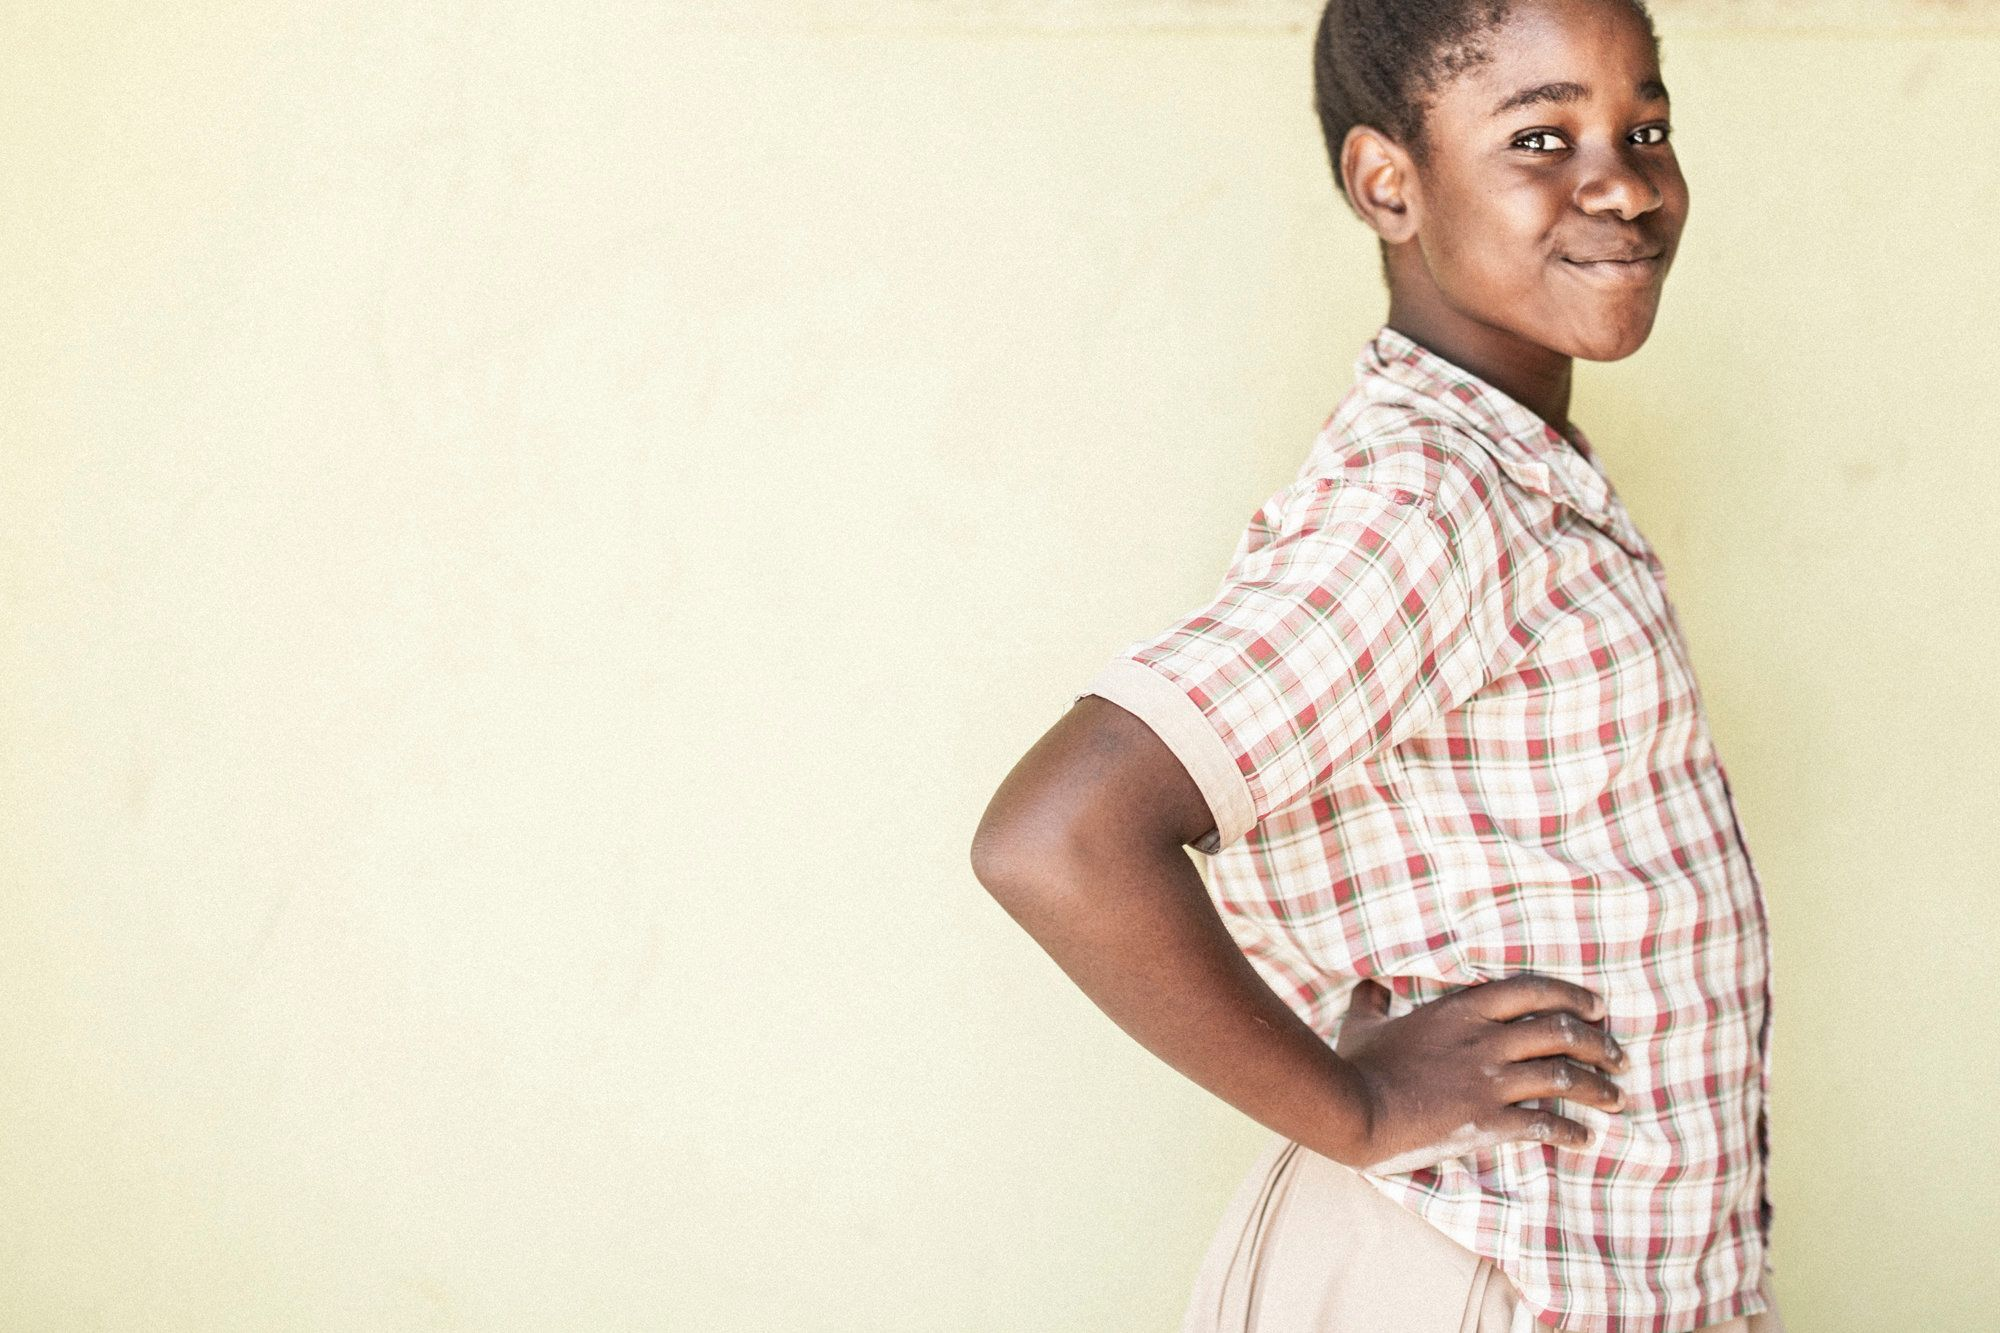 By taking photos of the women of Haiti, photographerThibault Carron says he captured the country's strength.